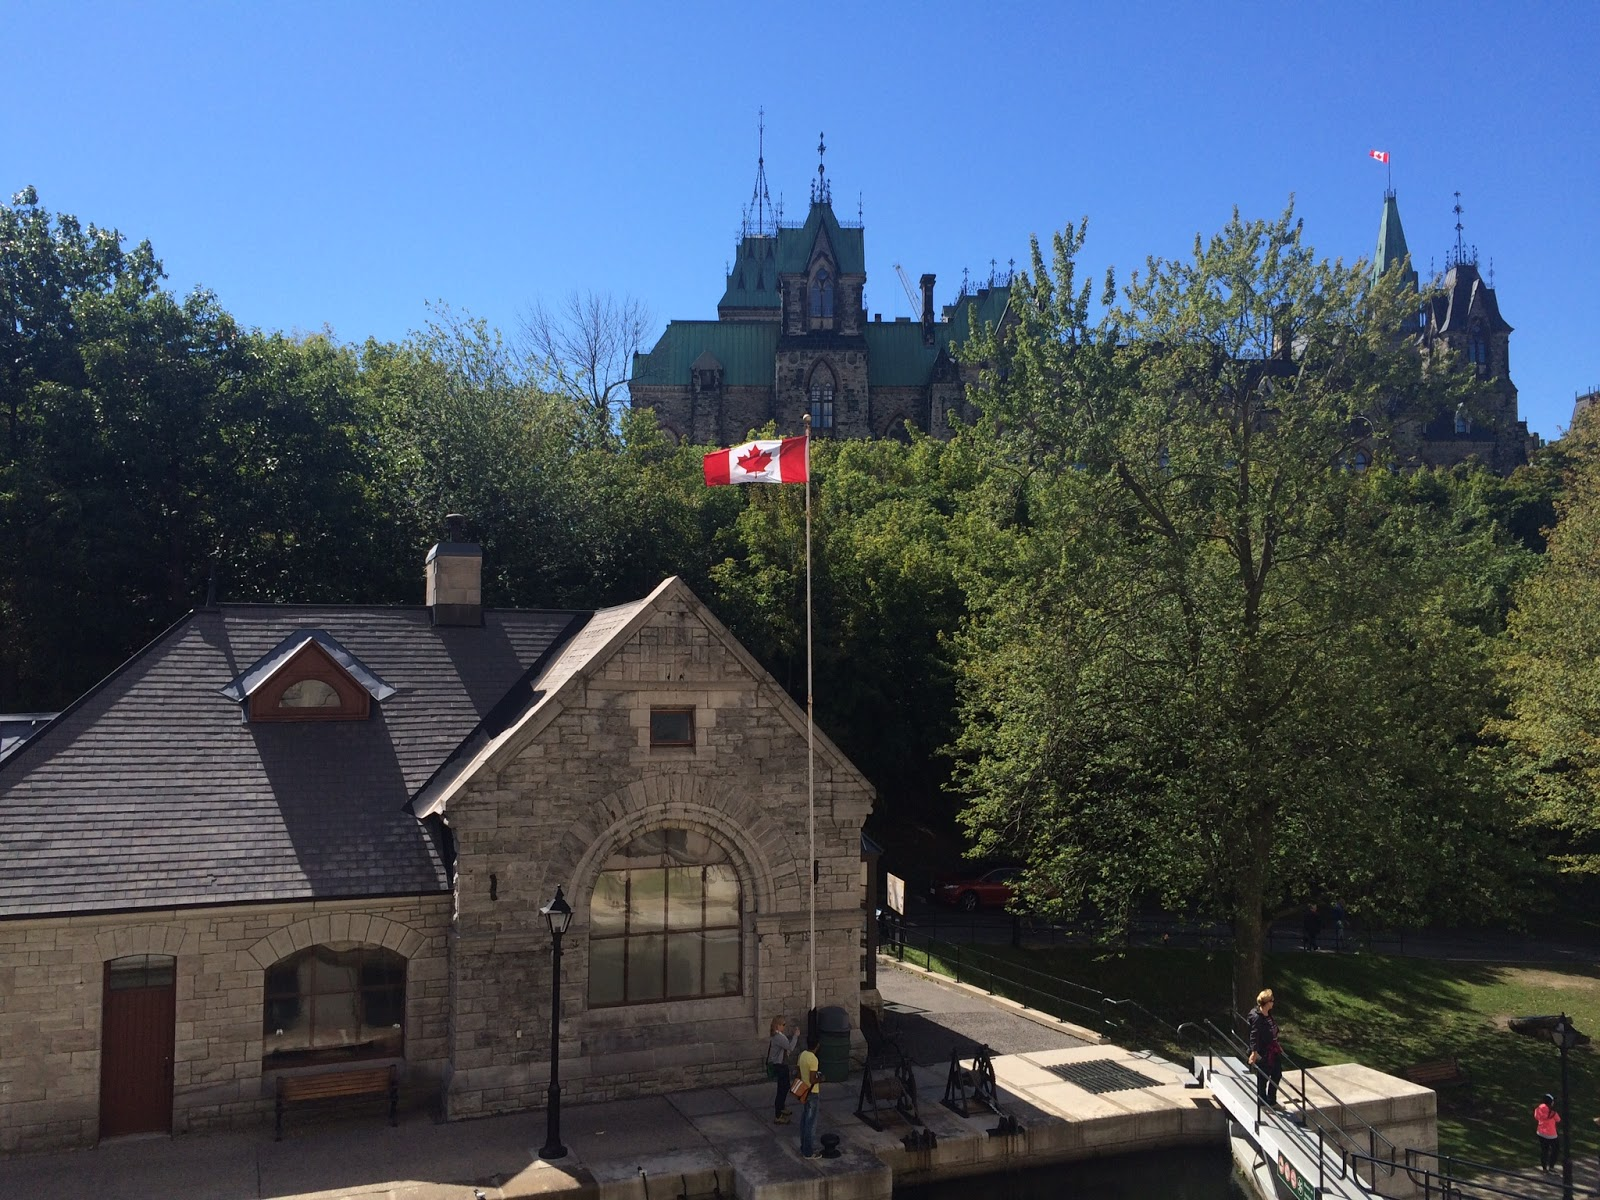 Canada - House with Maple Leaf flag